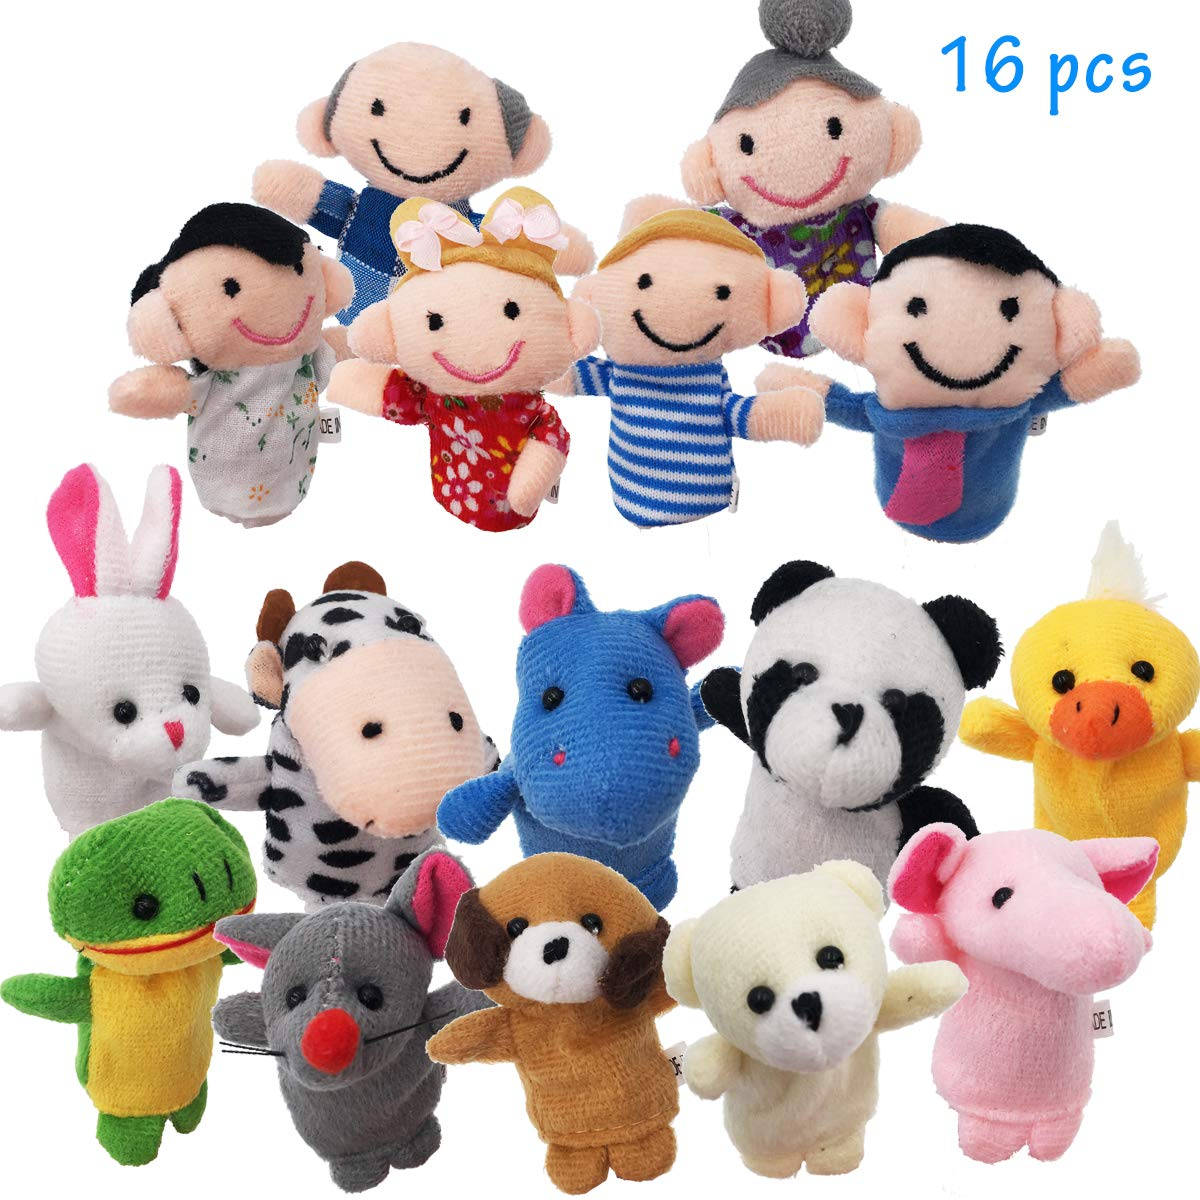 URUTOREO Finger Puppets Set, 16 Pcs -10 Animals and 6 People Family Members Story Time Velvet Puppets Toys for Children Kids Toddlers School Playtime Show Gift